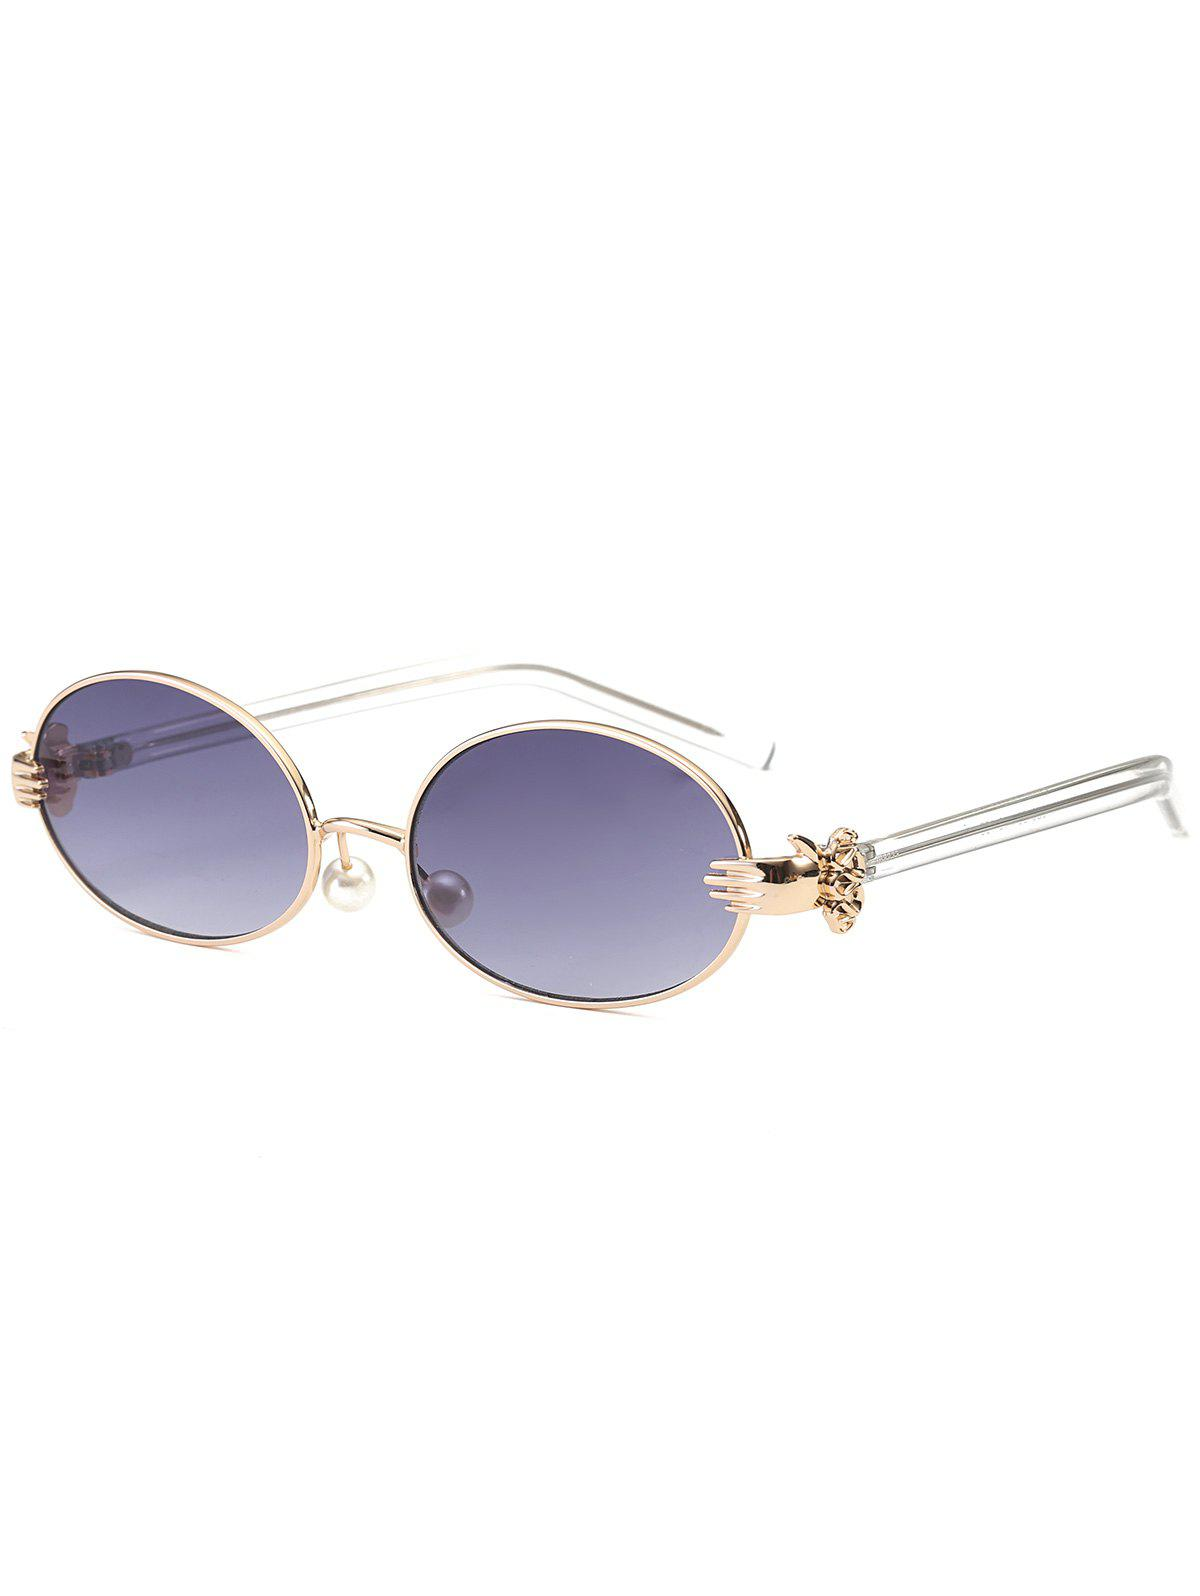 Store Oval Faux Pearl Nose Pad Metallic Hand Sunglasses